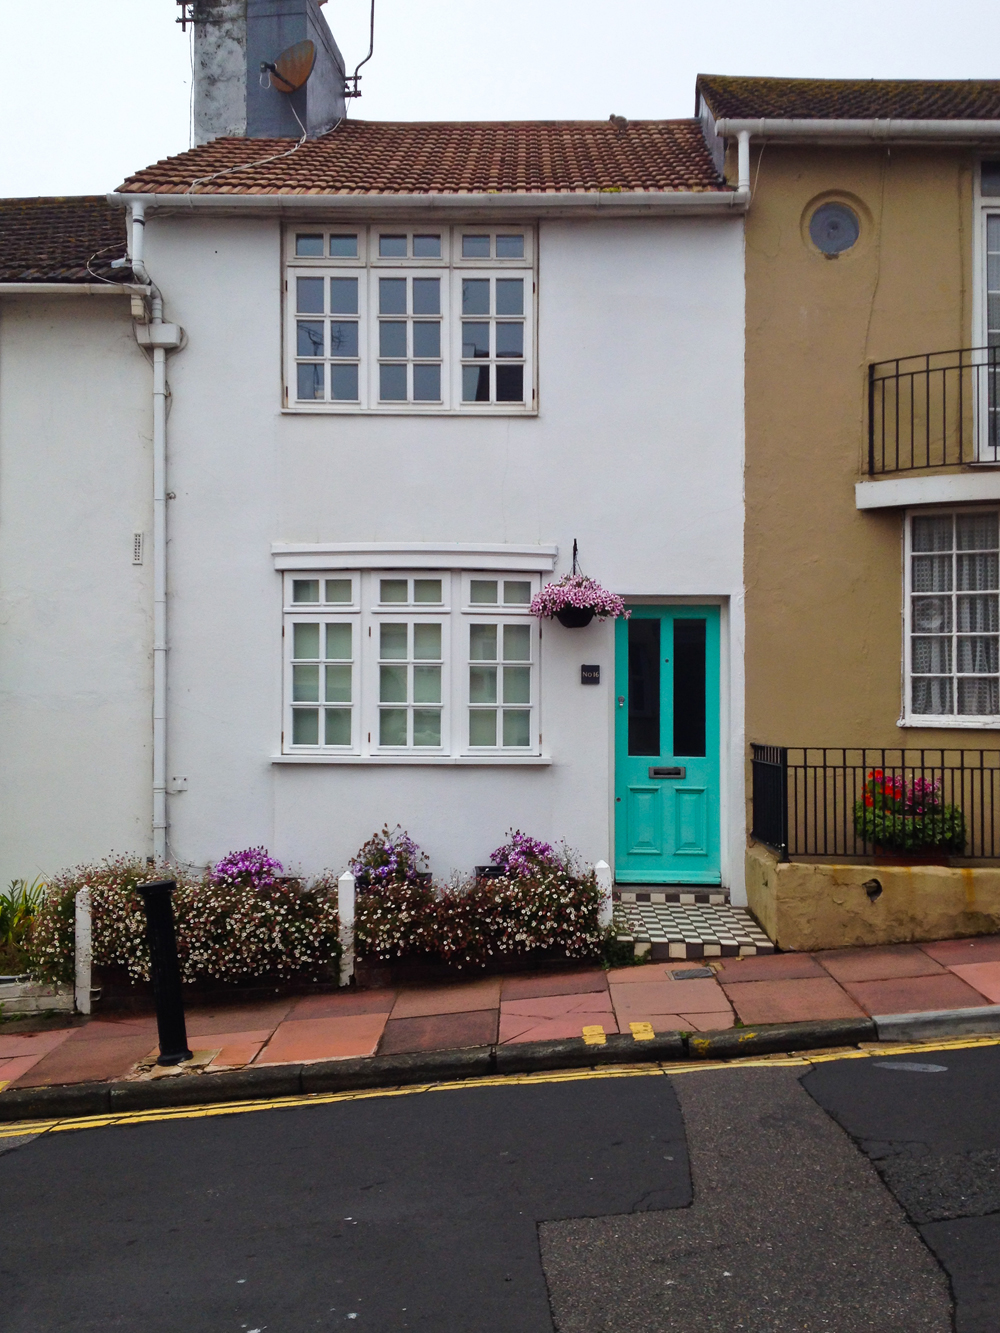 isabella-blume-brighton-uk-travelblogger-house